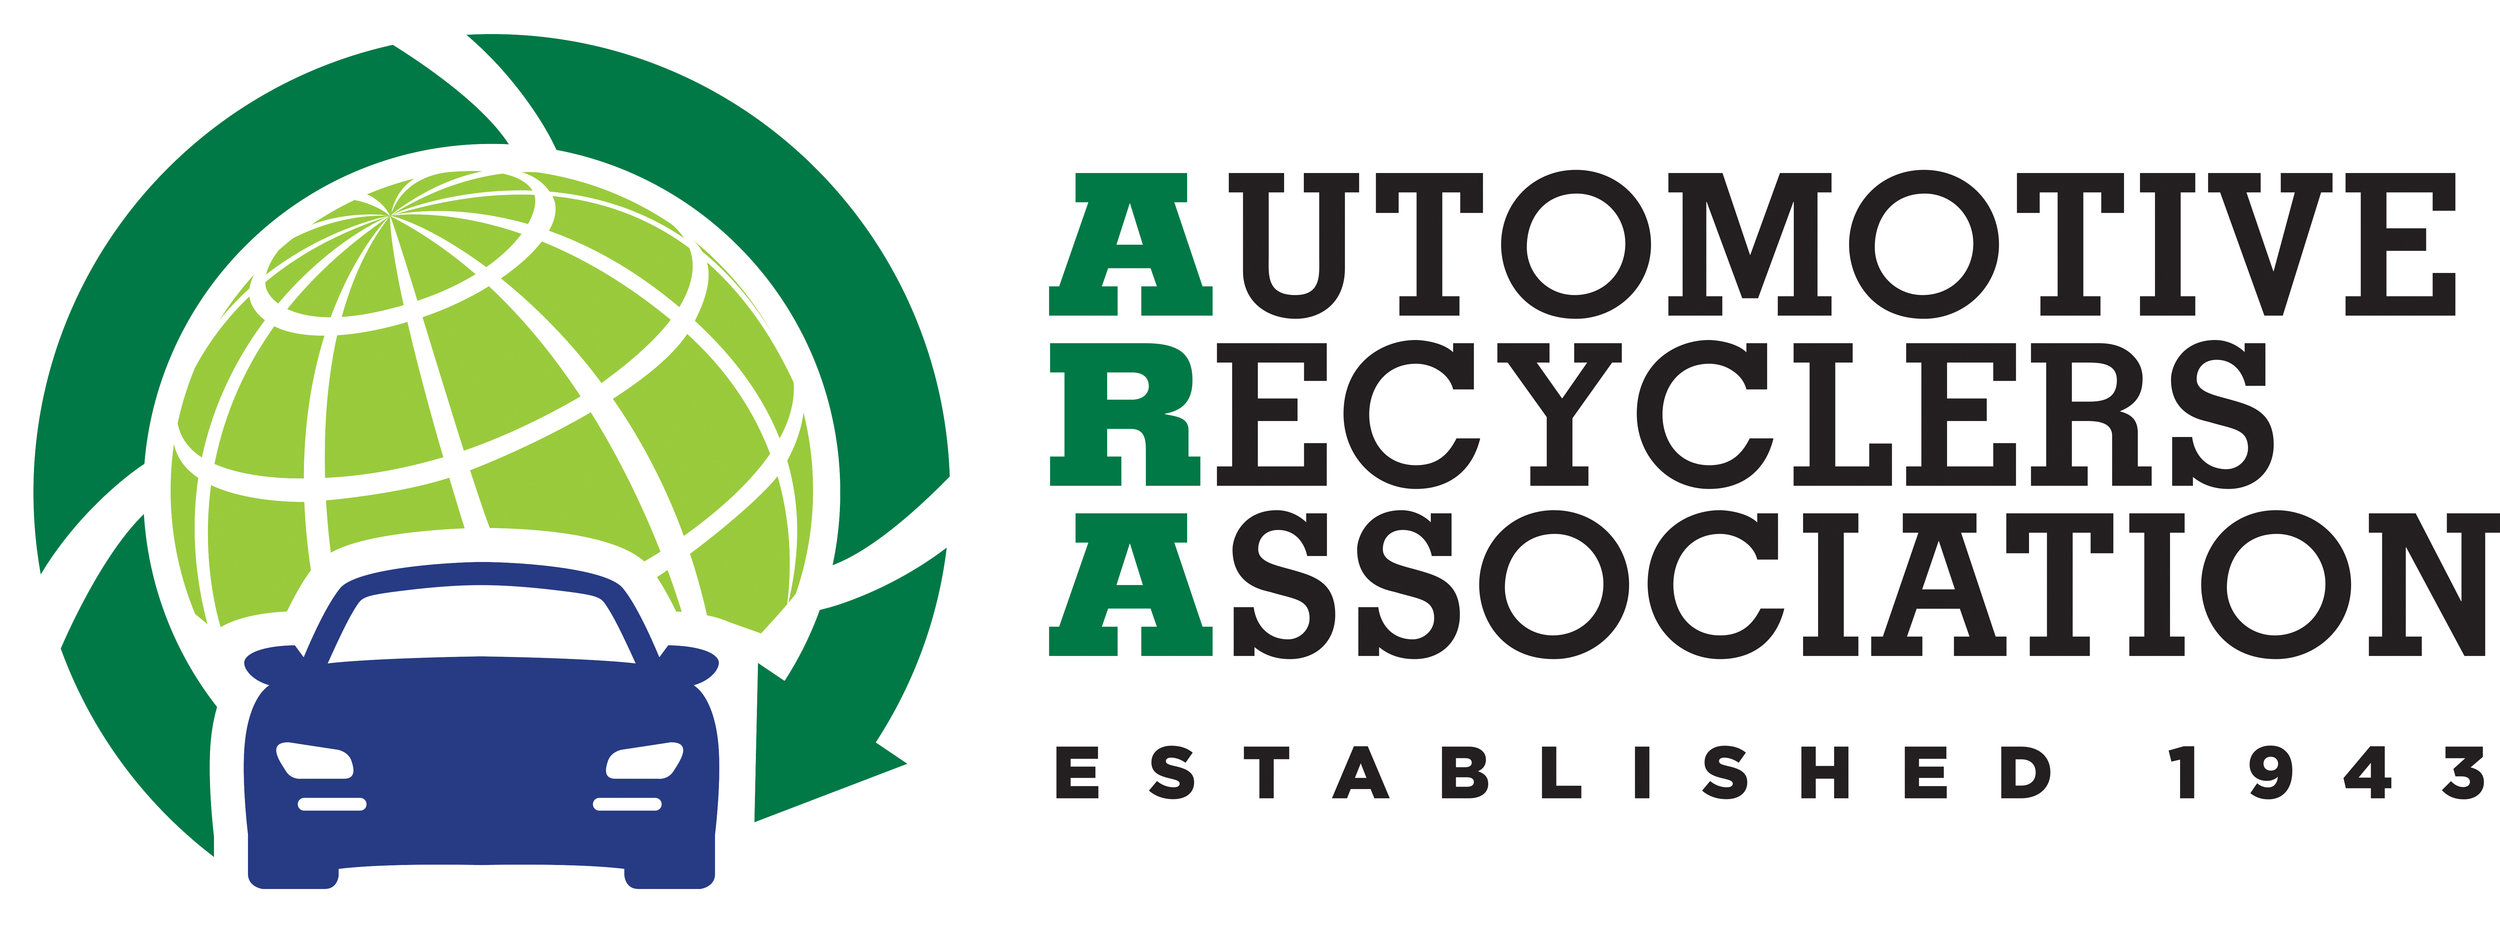 ARA - The Automotive Recyclers Association (ARA) is the voice of the professional automotive recycling industry. Founded in 1943, ARA represents an industry dedicated to the efficient removal and reuse of automotive parts, and the safe disposal of inoperable motor vehicles.